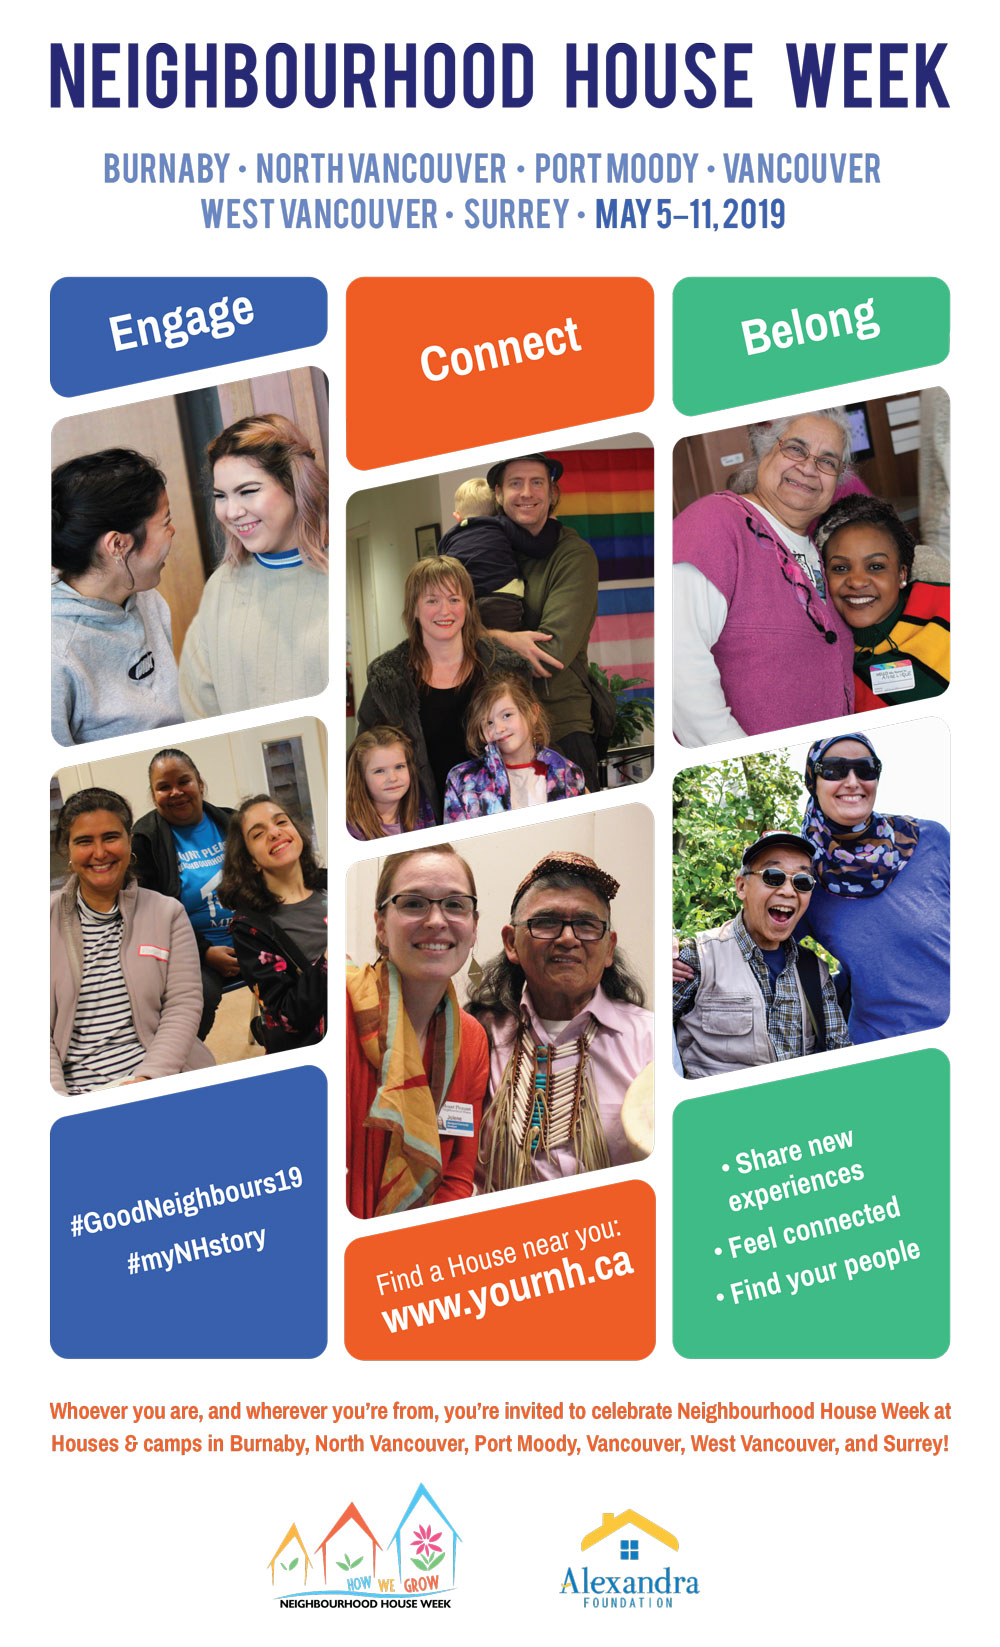 A poster showing images of people from many generations, abilities and cultural backgrounds, smiling and doing activities together.